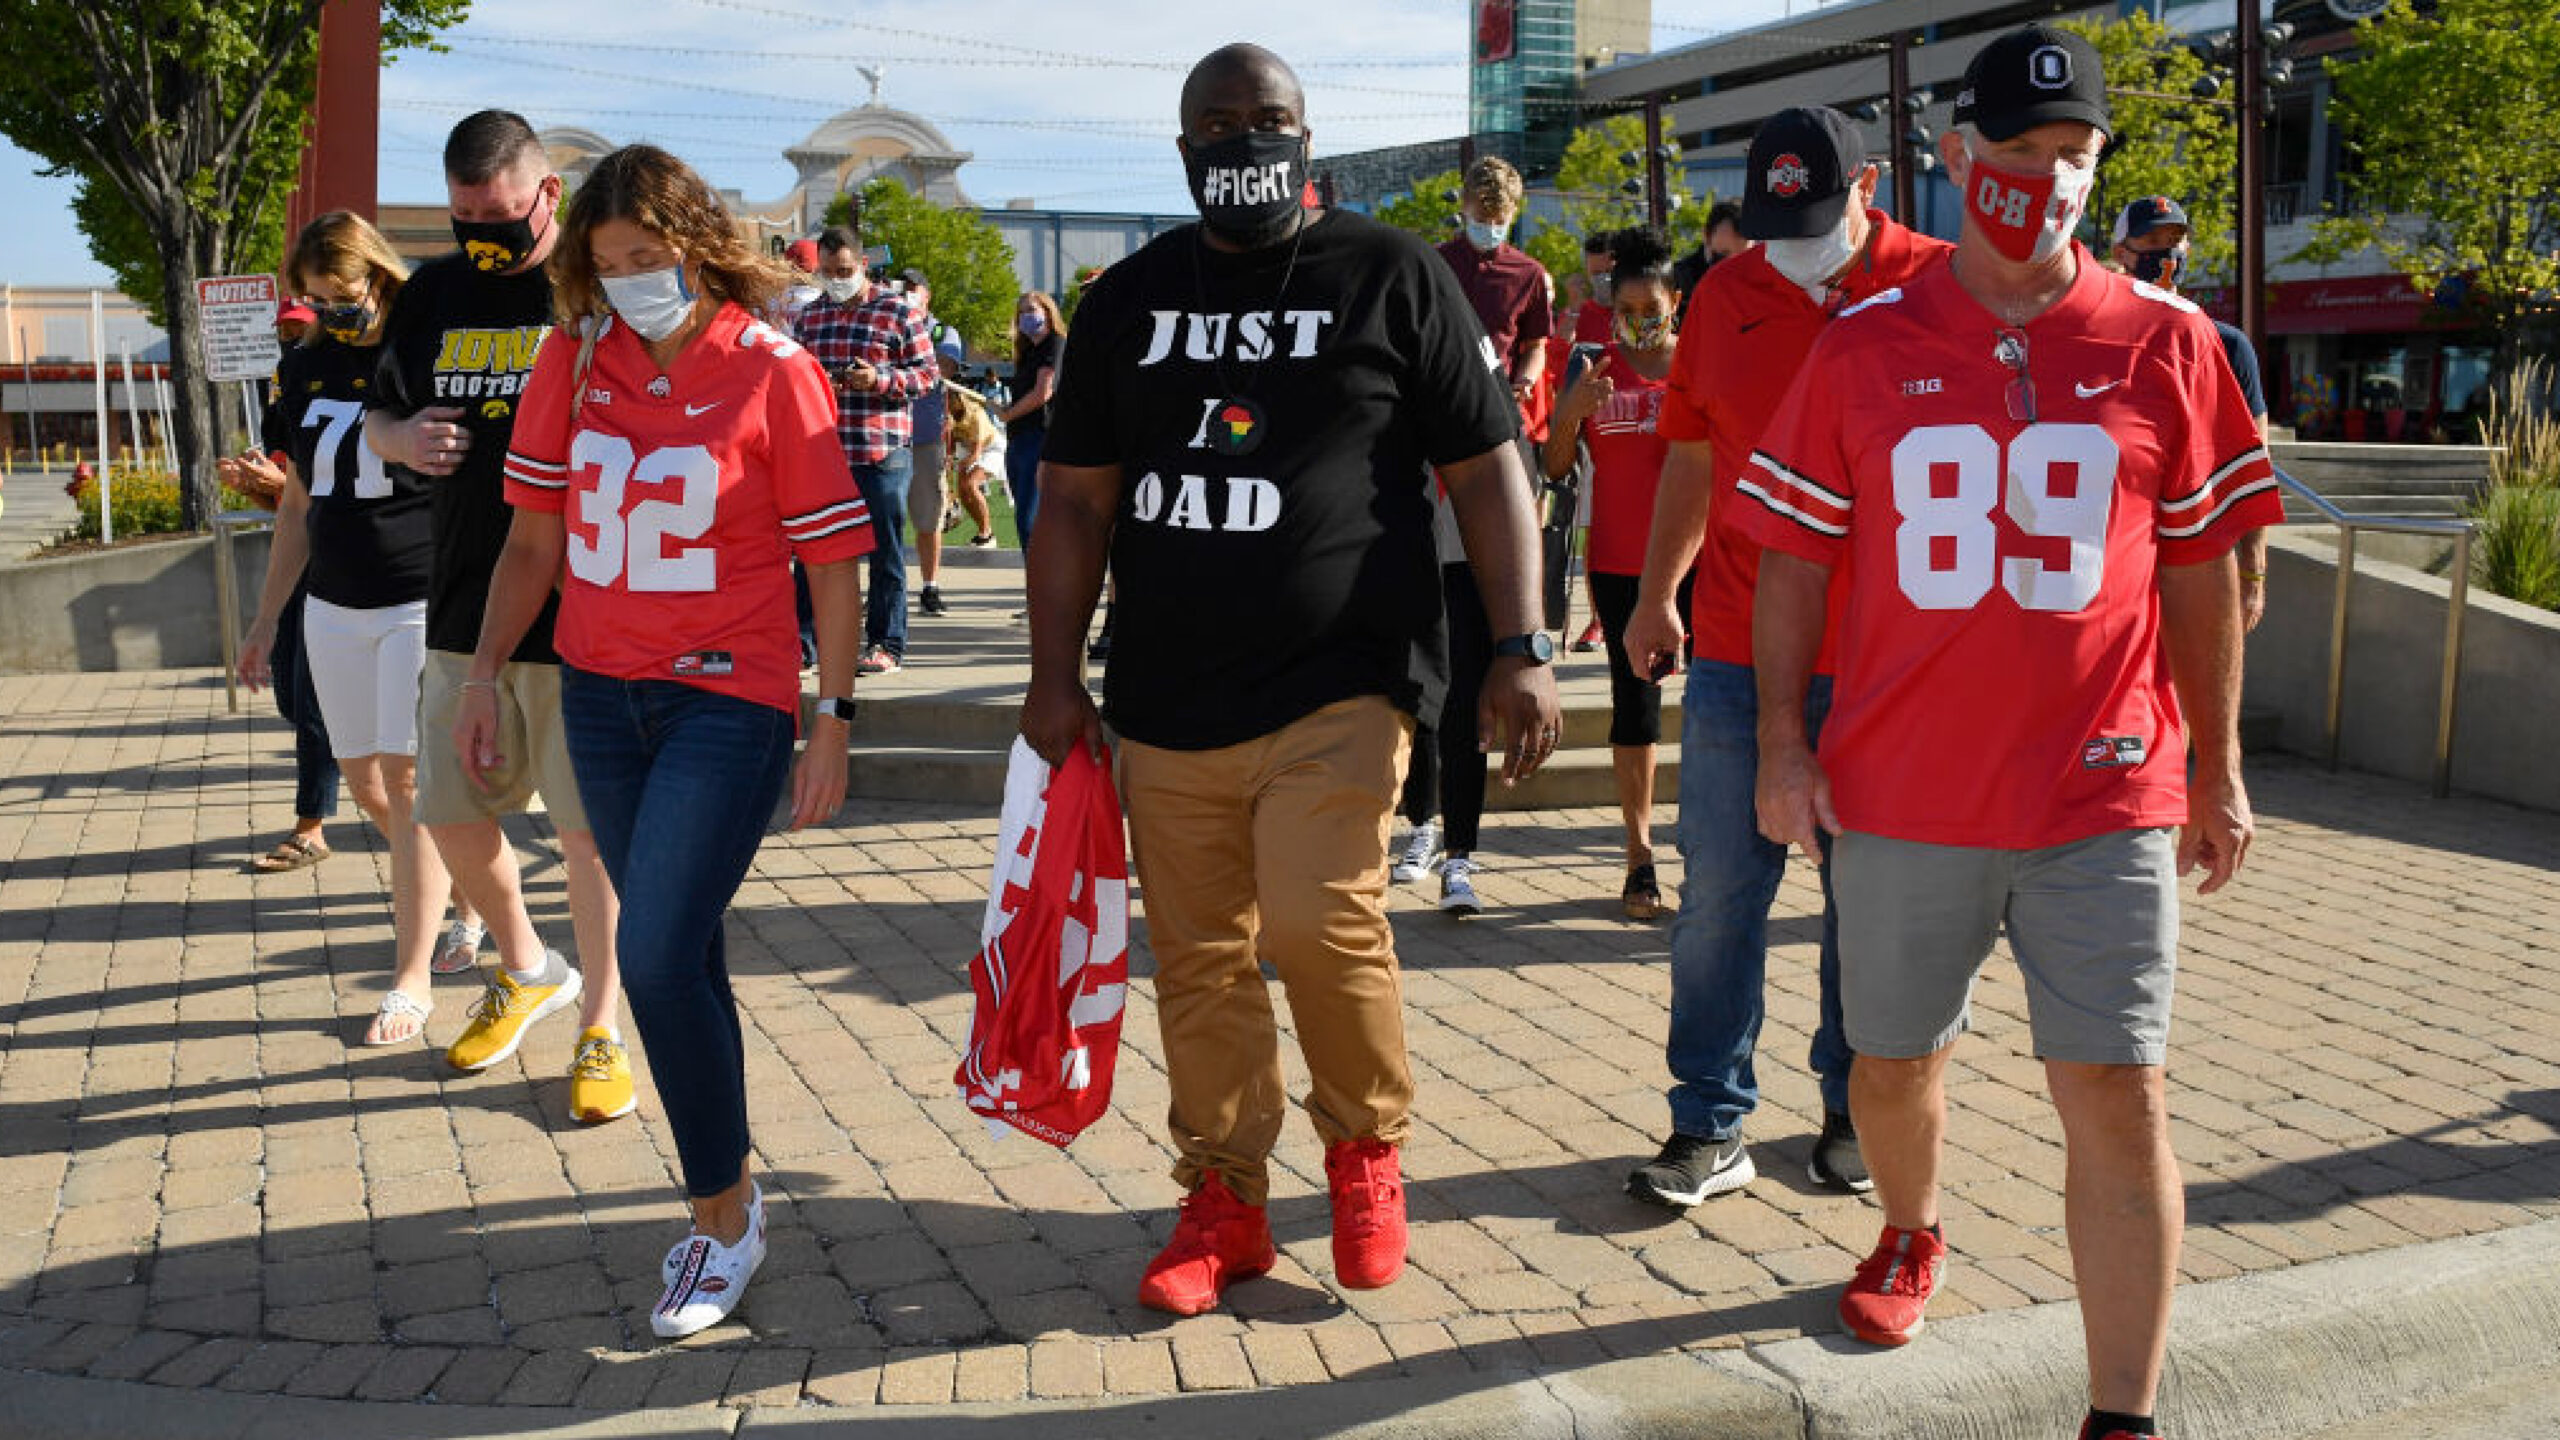 ROSEMONT, ILLINOIS - AUGUST 21: Randy Wade, father of Shaun Wade of the Ohio State Buckeyes, marches during a parent rally outside of the Big Ten Conference headquarters on August 21, 2020 in Rosemont, Illinois. The Big Ten conference made the decision to delay the fall football season until the spring to protect players and staff as transmission of the COVID-19 virus continues to rise. (Photo by Quinn Harris/Getty Images)